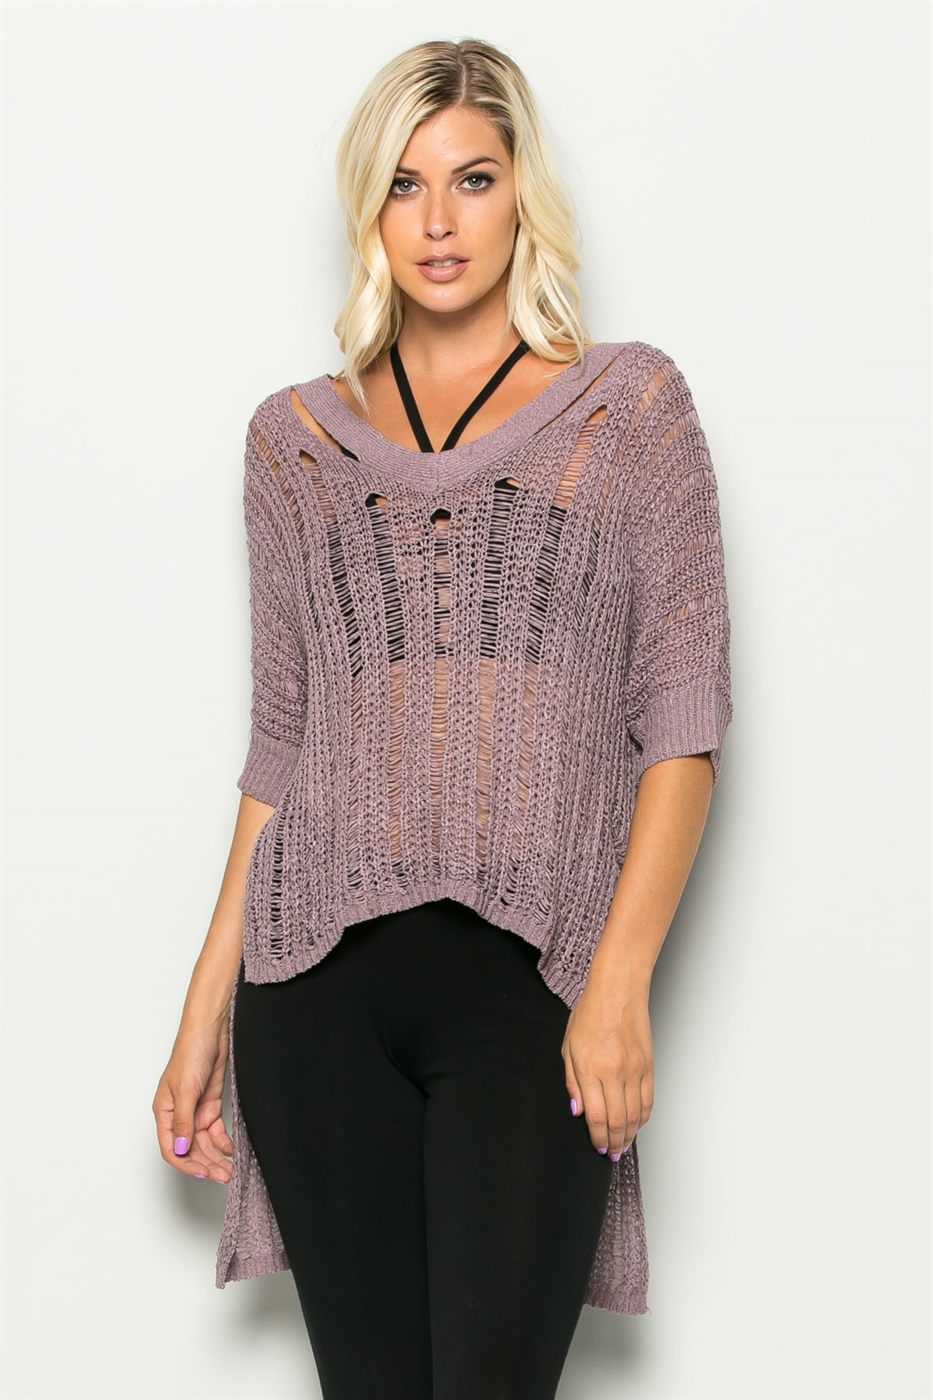 SUNNY DAYS TAILORED KNIT TOP - orangeshine.com